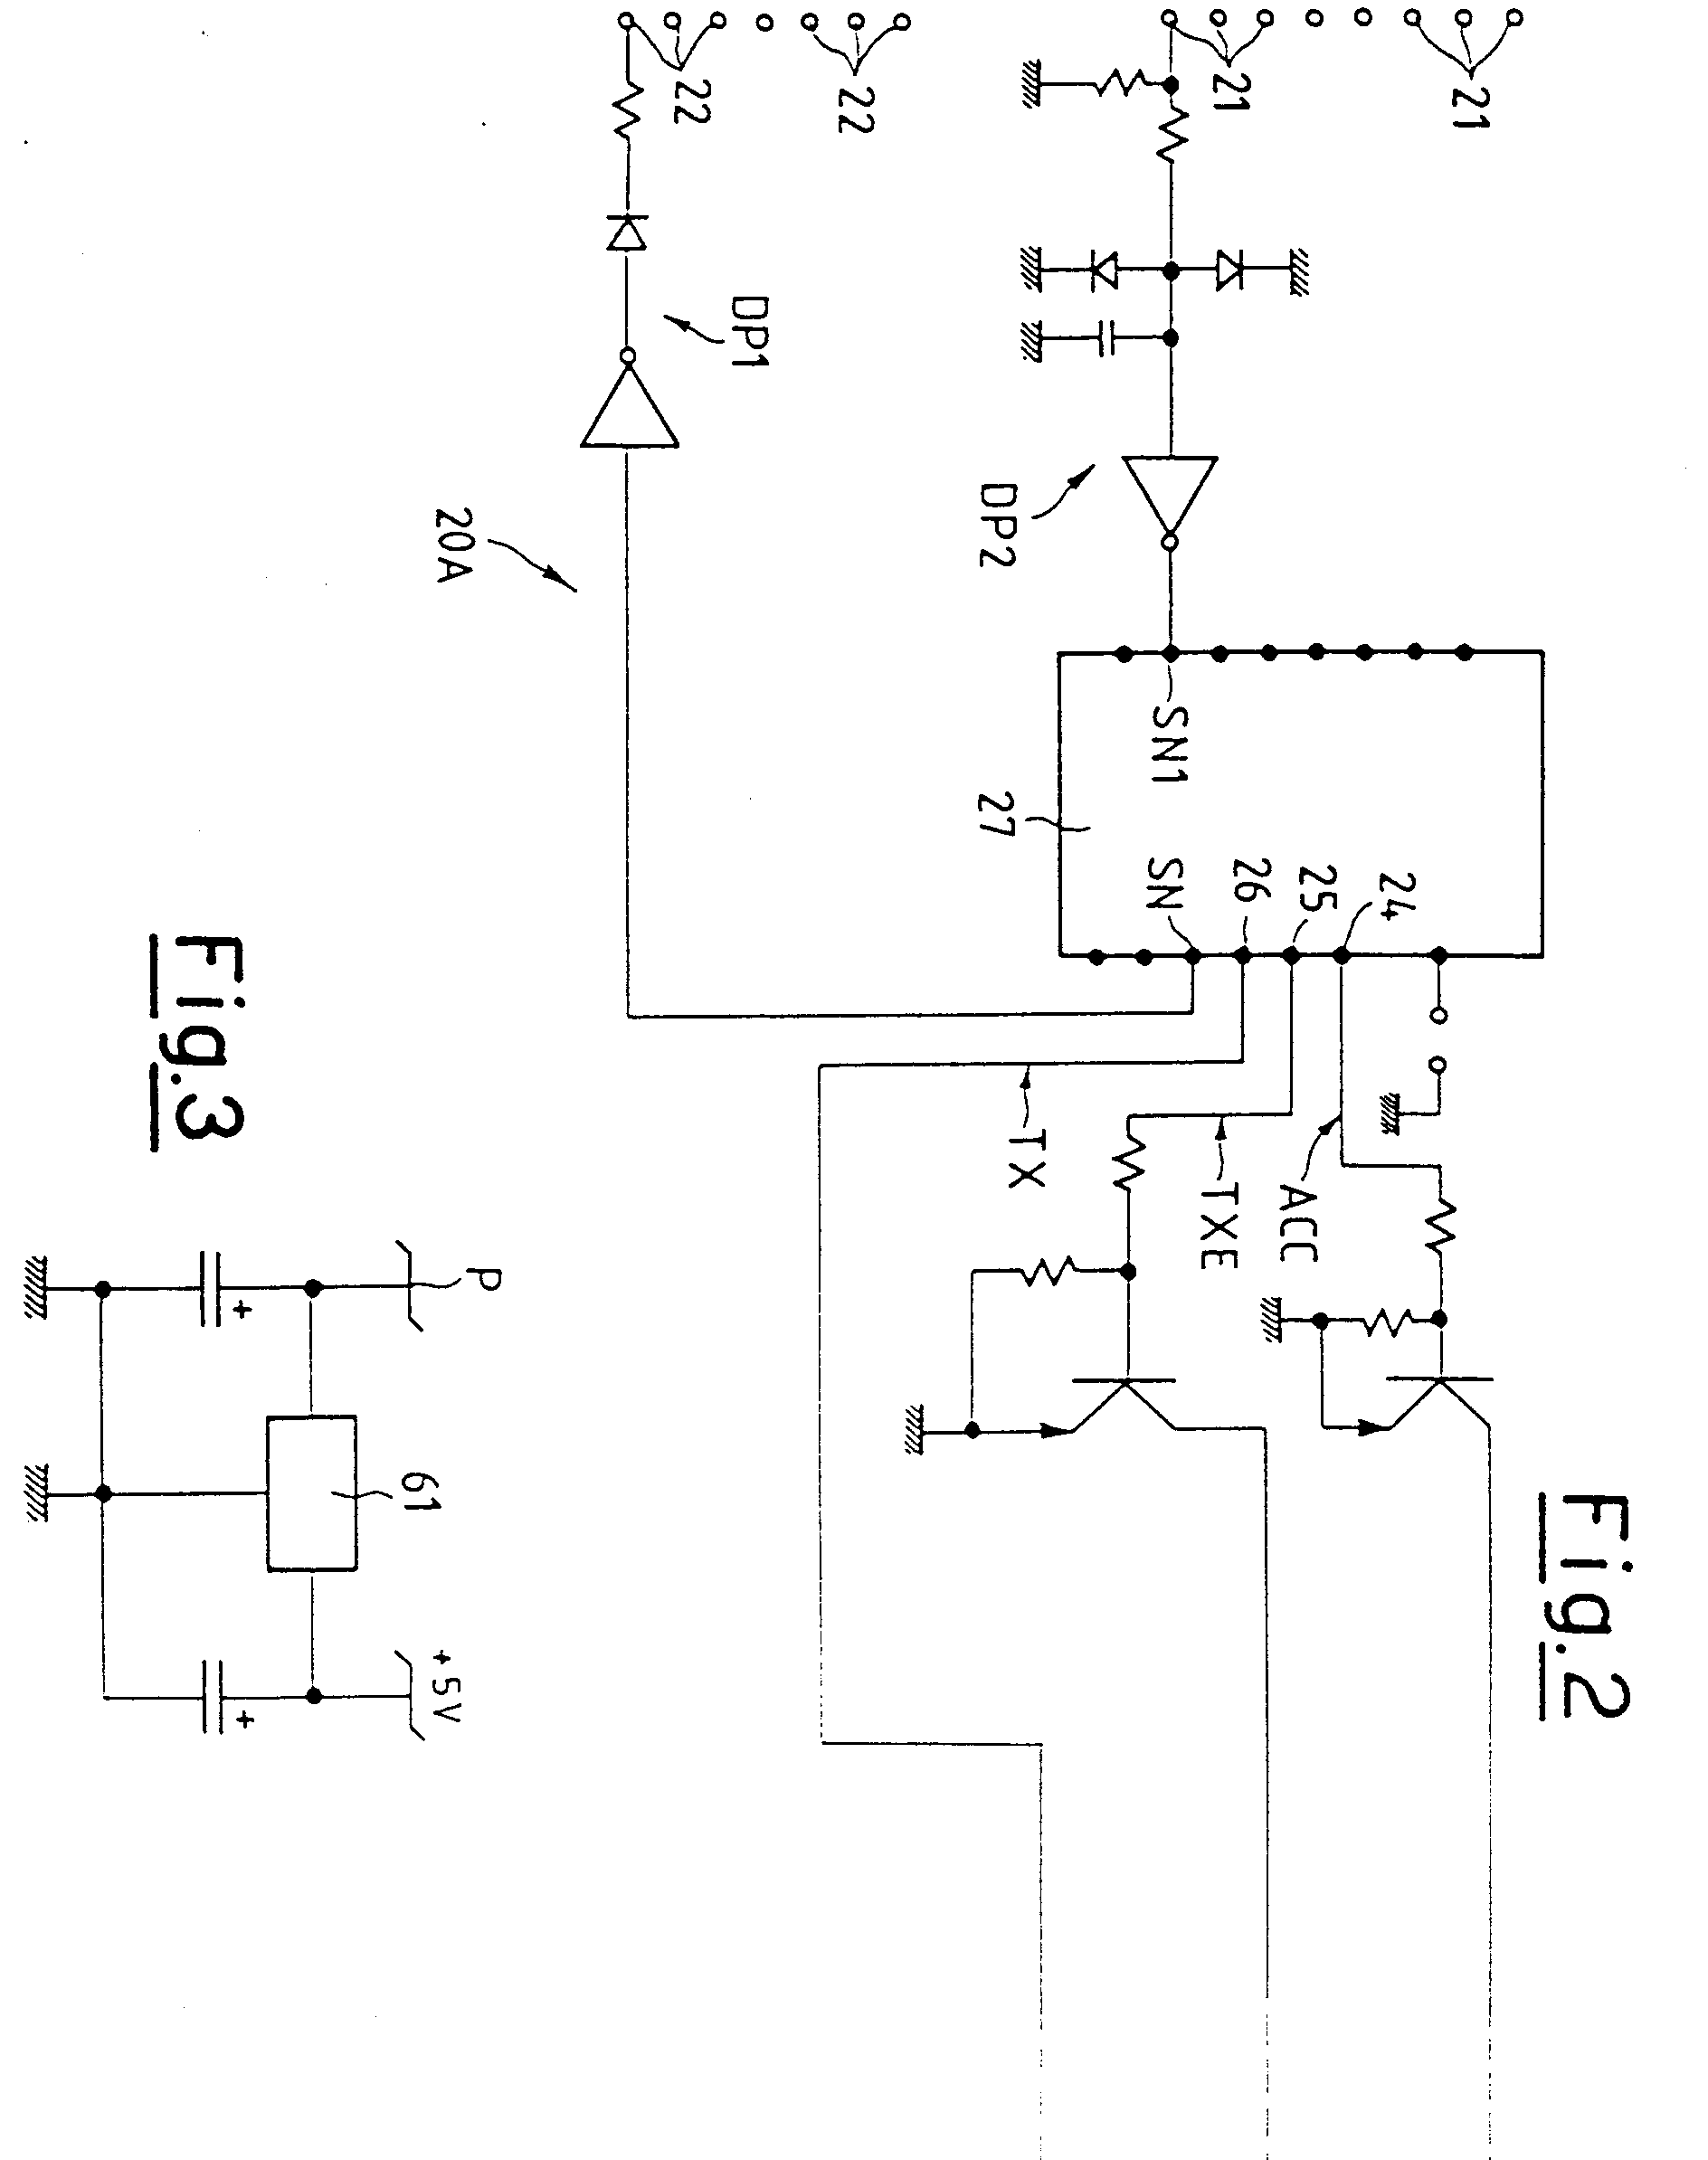 00120001 patent ep0876044a2 electric connection system for intercom and bitron video intercom wiring diagram at bayanpartner.co